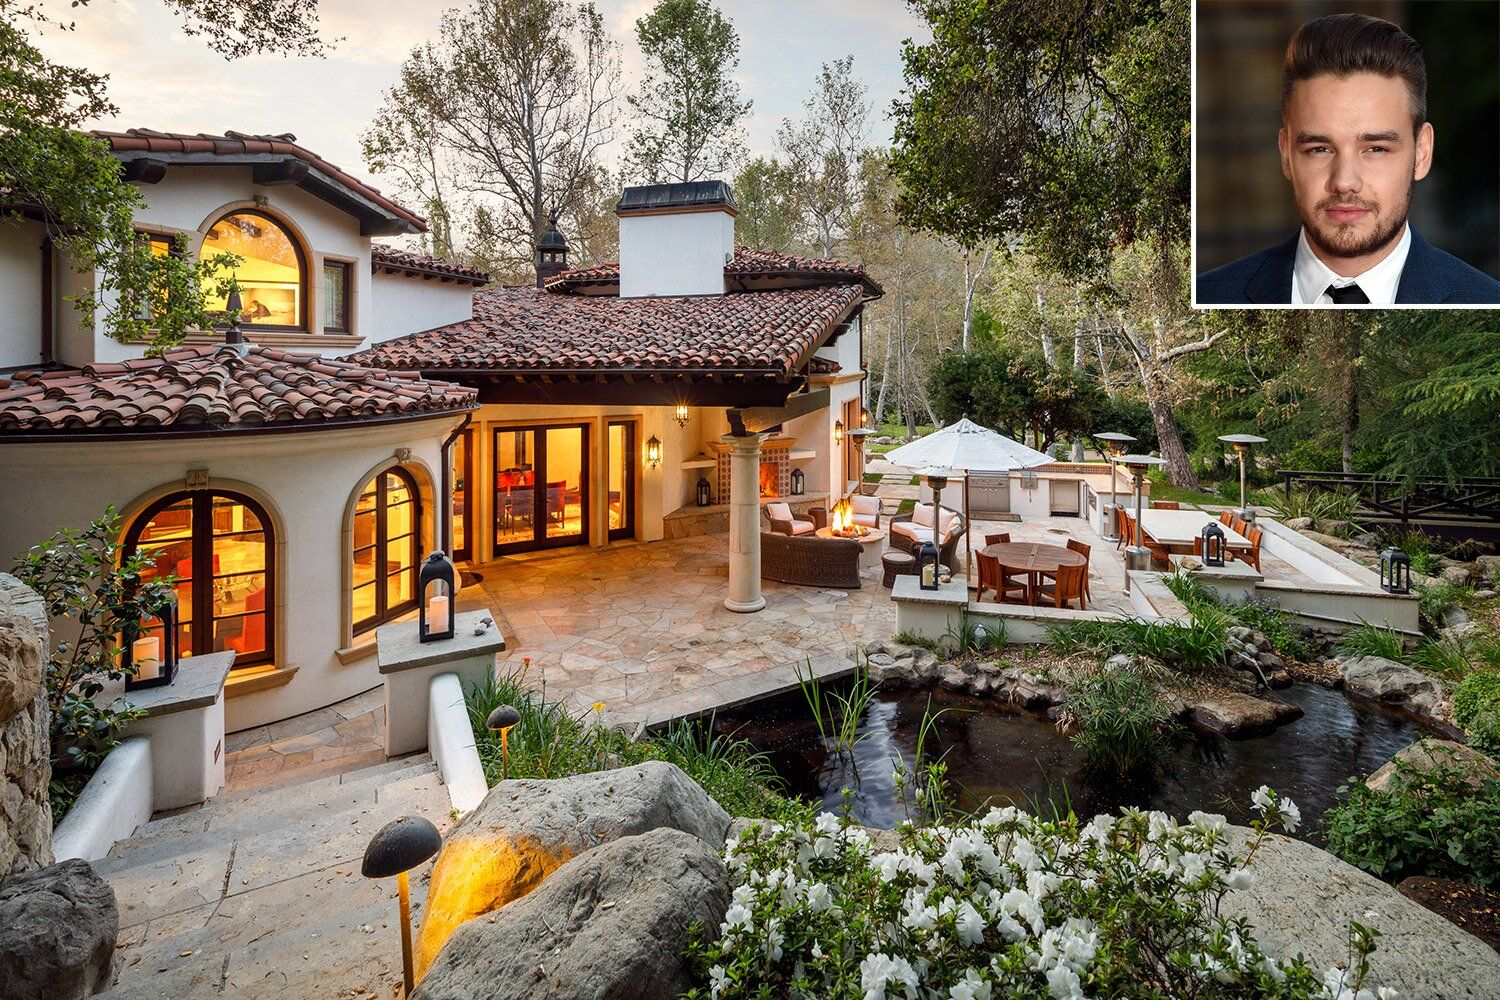 Kelly Clarkson Relists L A Home For 9 Million In Aftermath Of Divorce Drama See Photos Calabasas Homes Mansions Calabasas